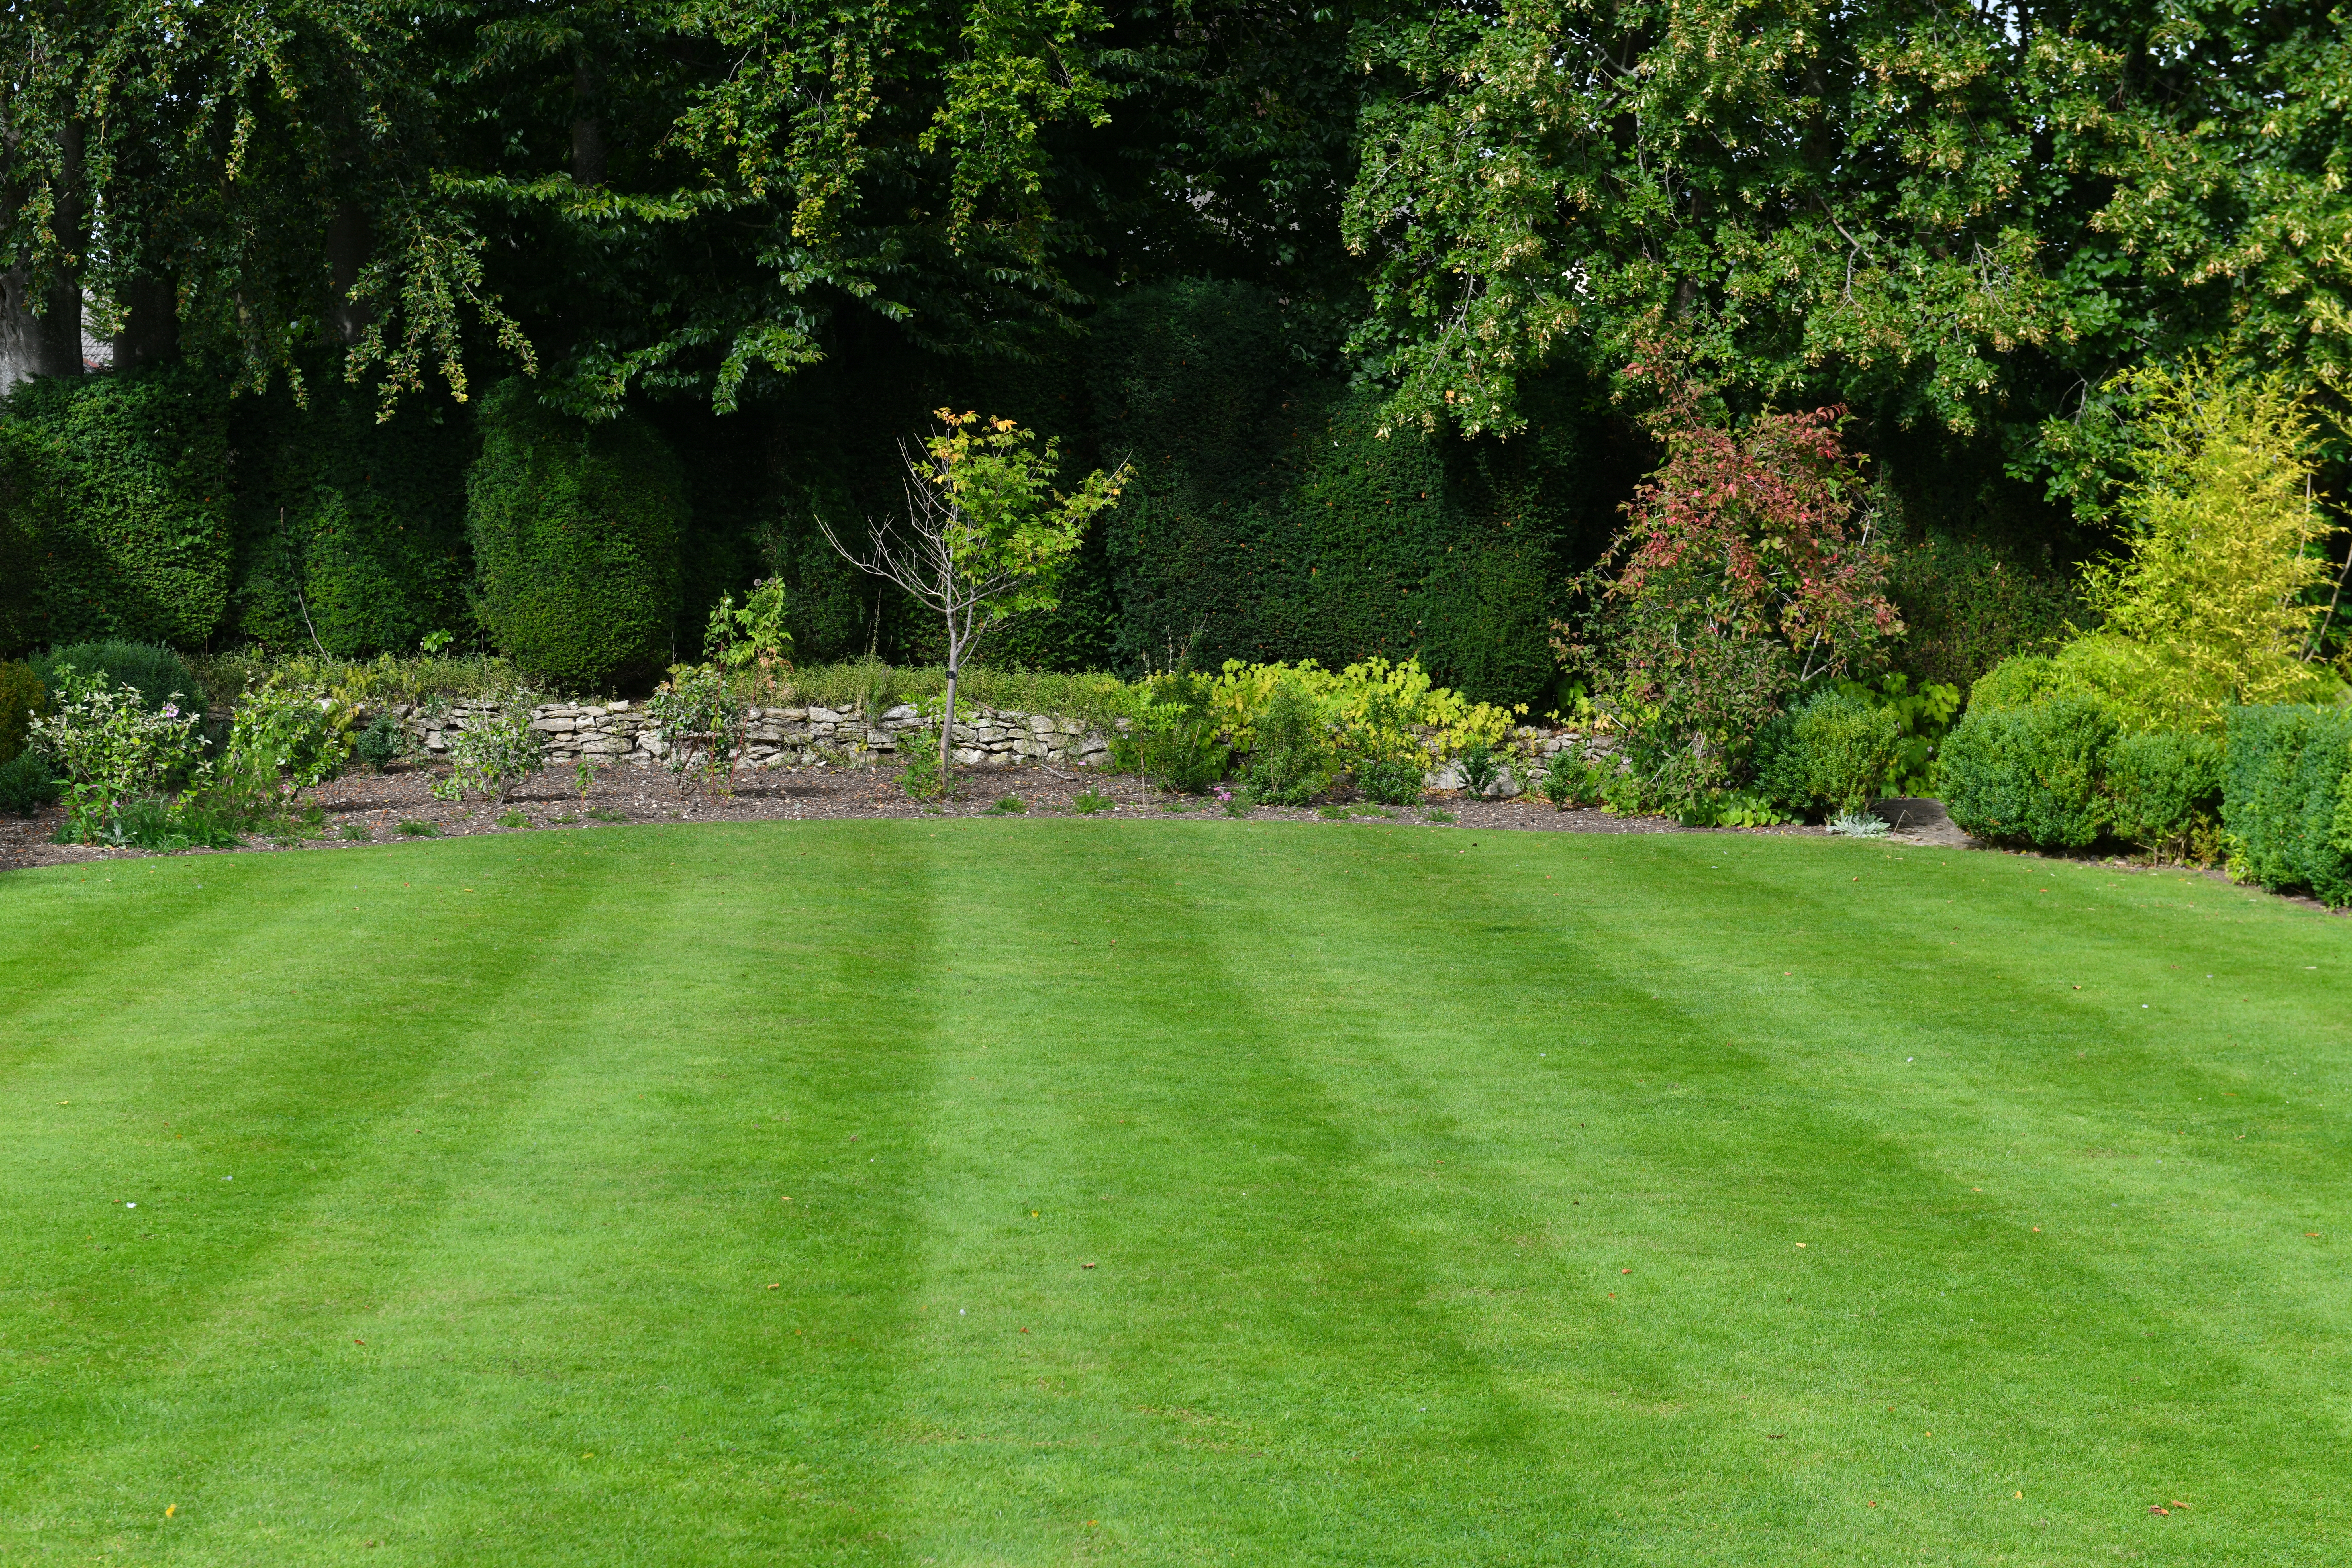 Sometimes I Wish I Had A Lawn To Mow